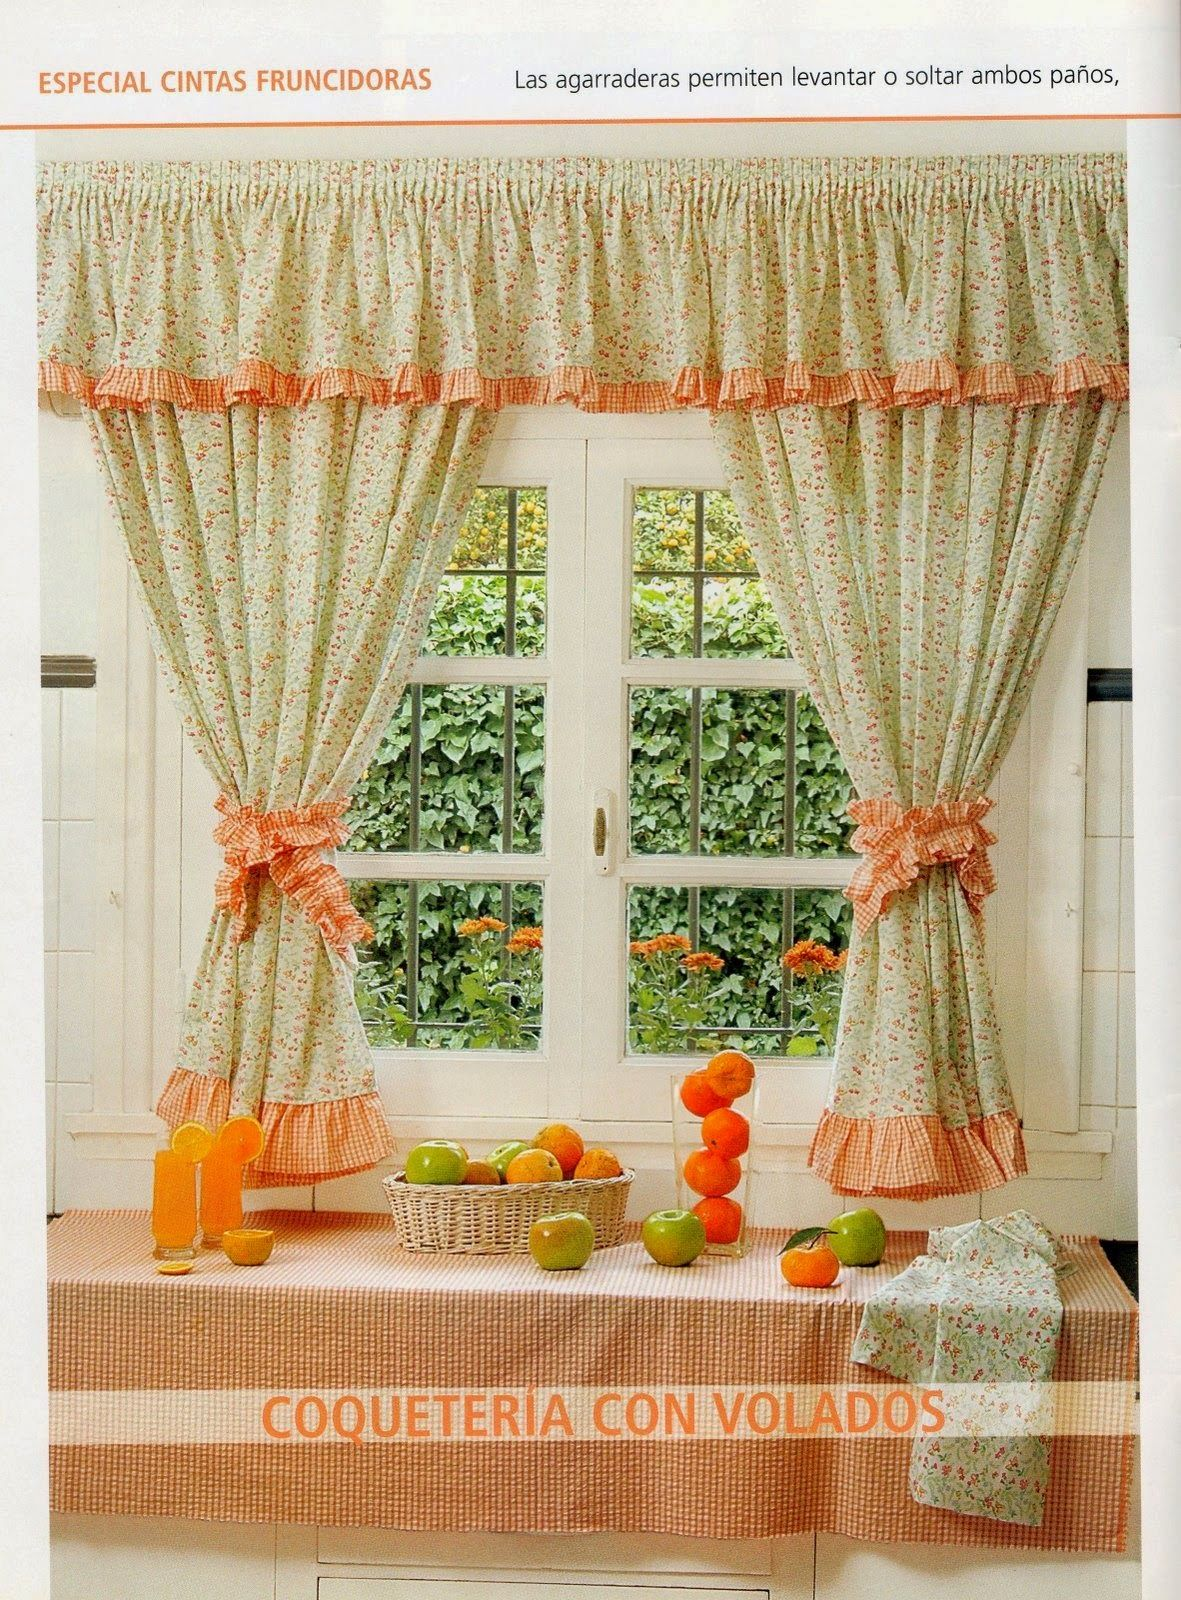 Como hacer cortinas on pinterest manualidades make - Cortinas de cocinas ...